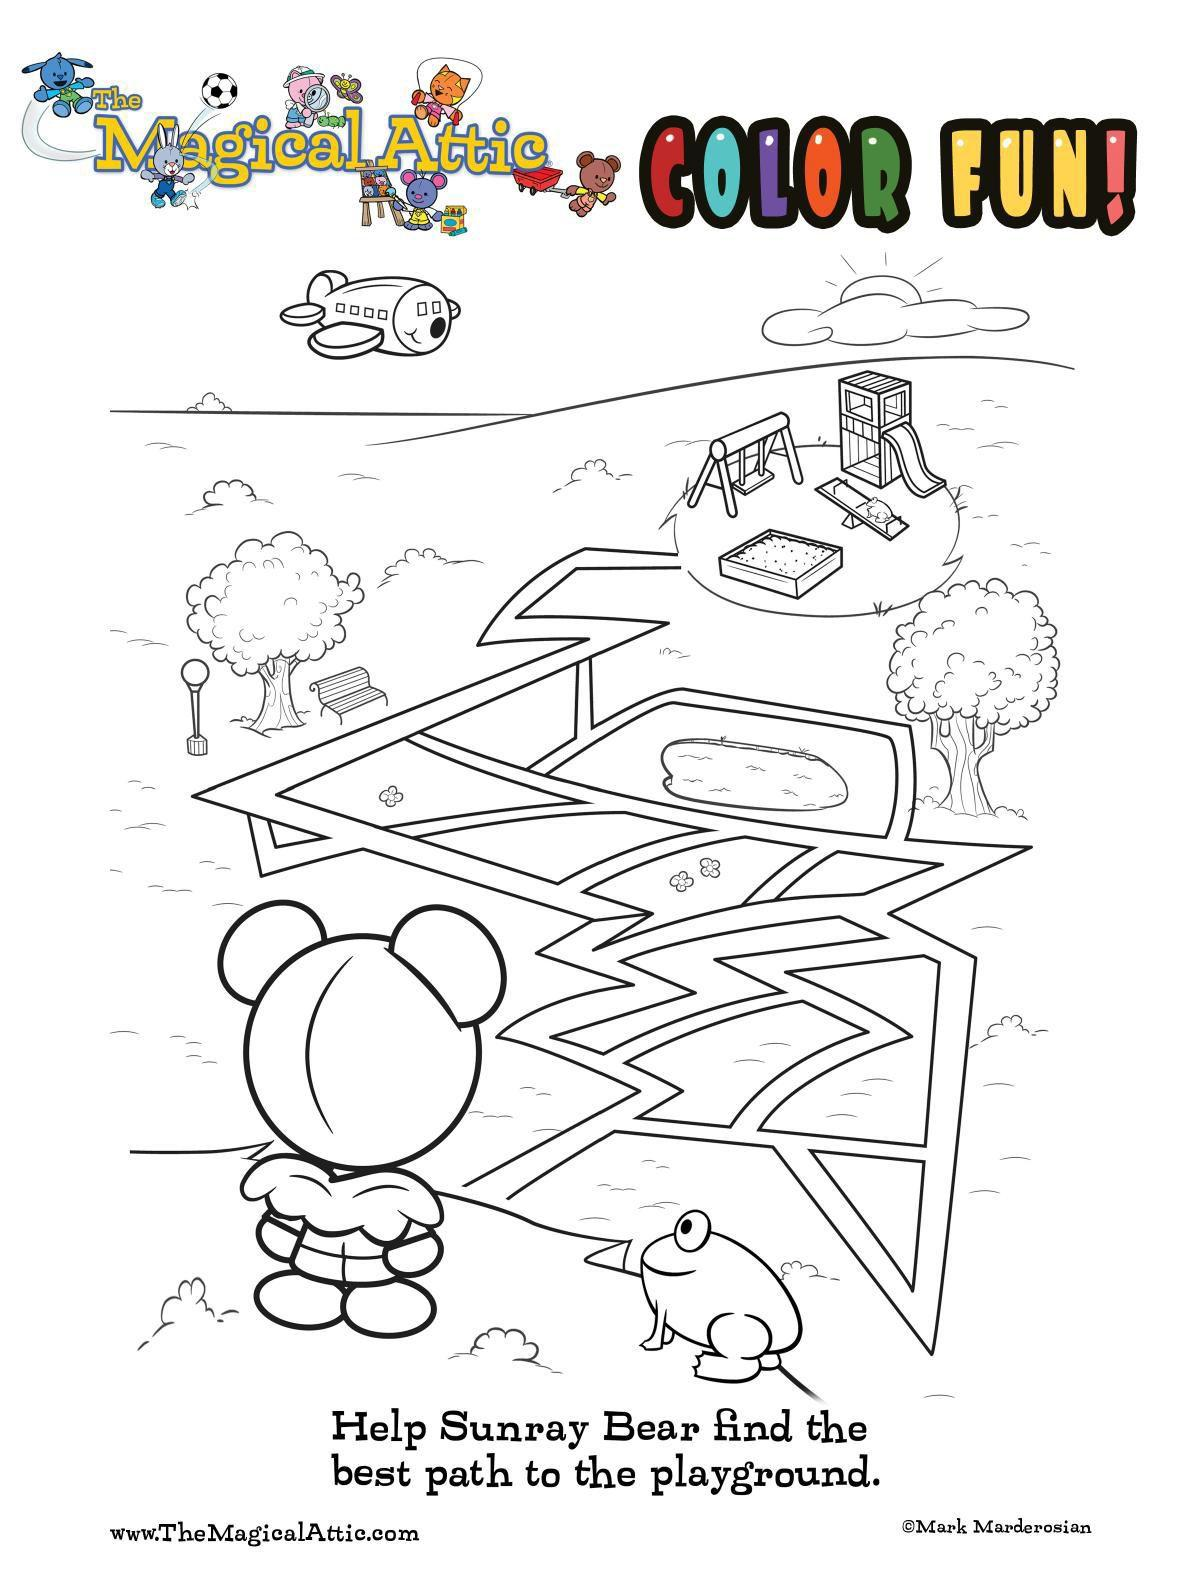 Coloring fun with Sunray Bear at the playground